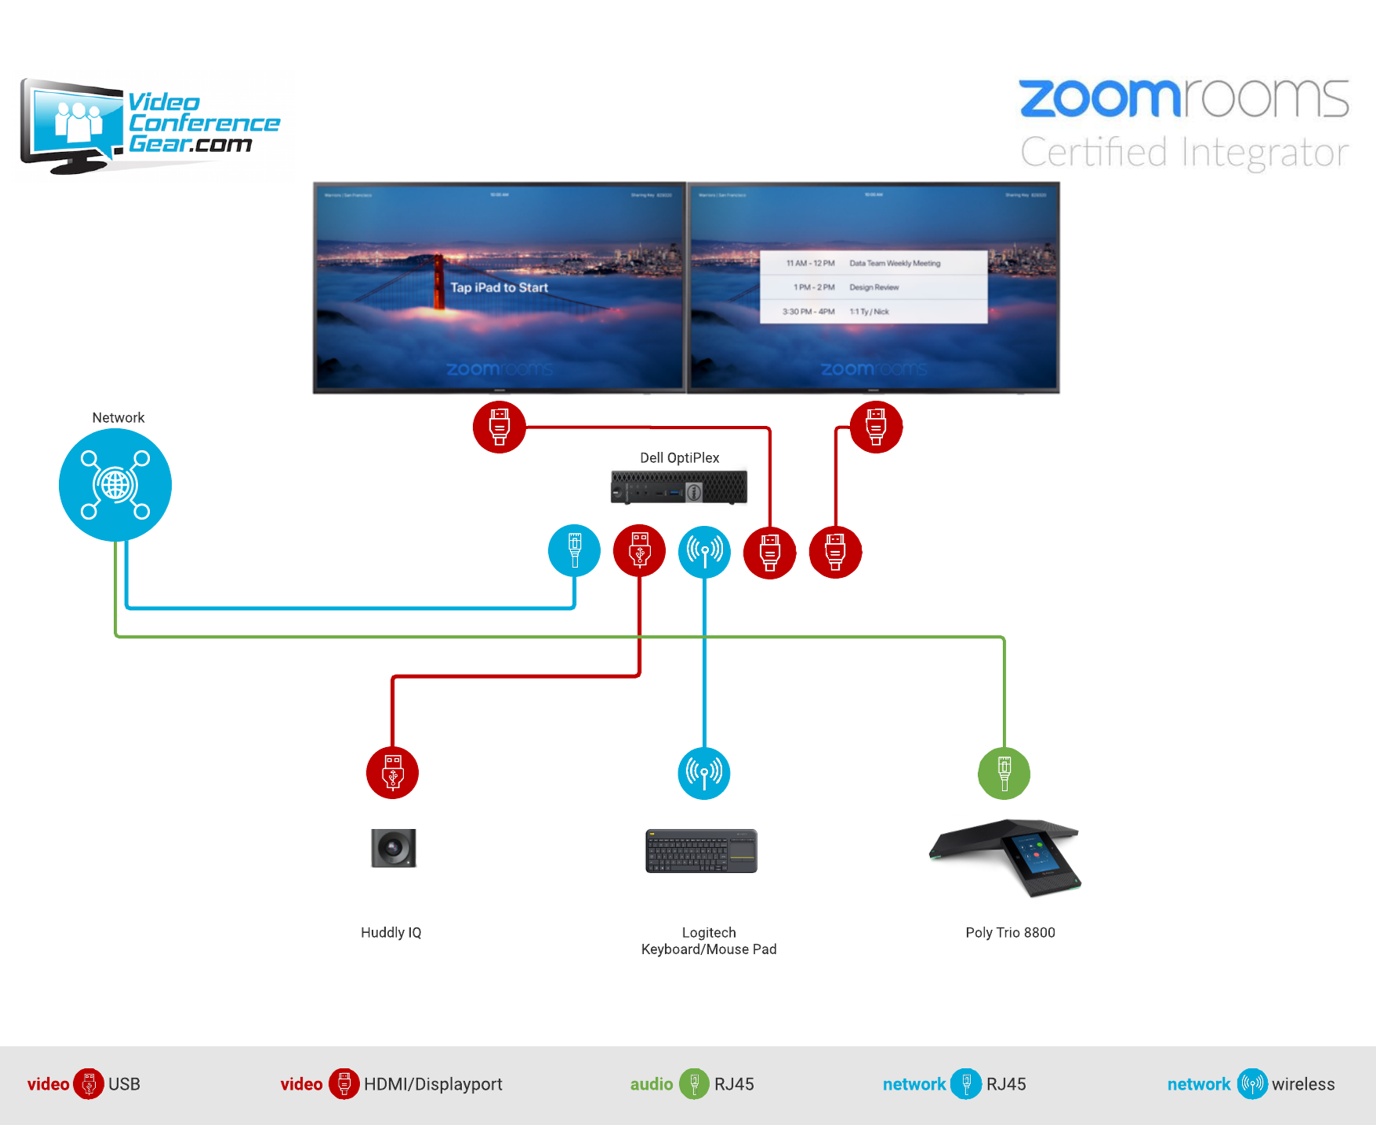 Zoom Rooms Kits from VCG